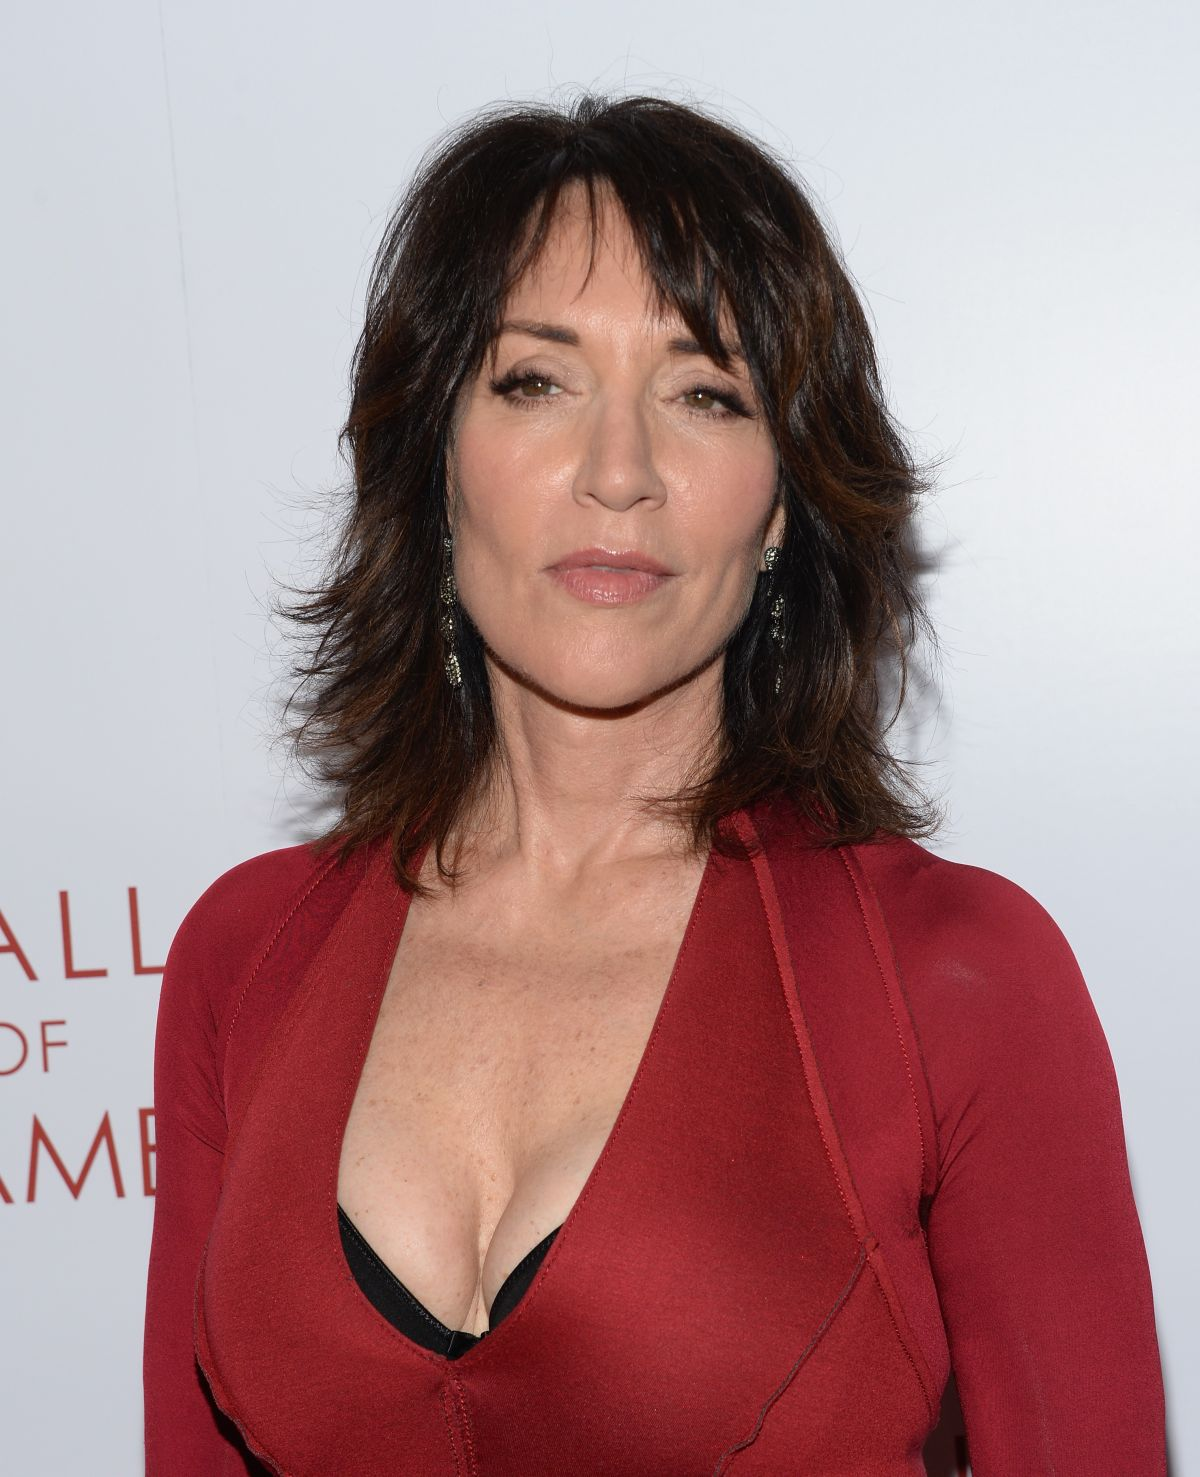 Katey Sagal earned a  million dollar salary - leaving the net worth at 30 million in 2017